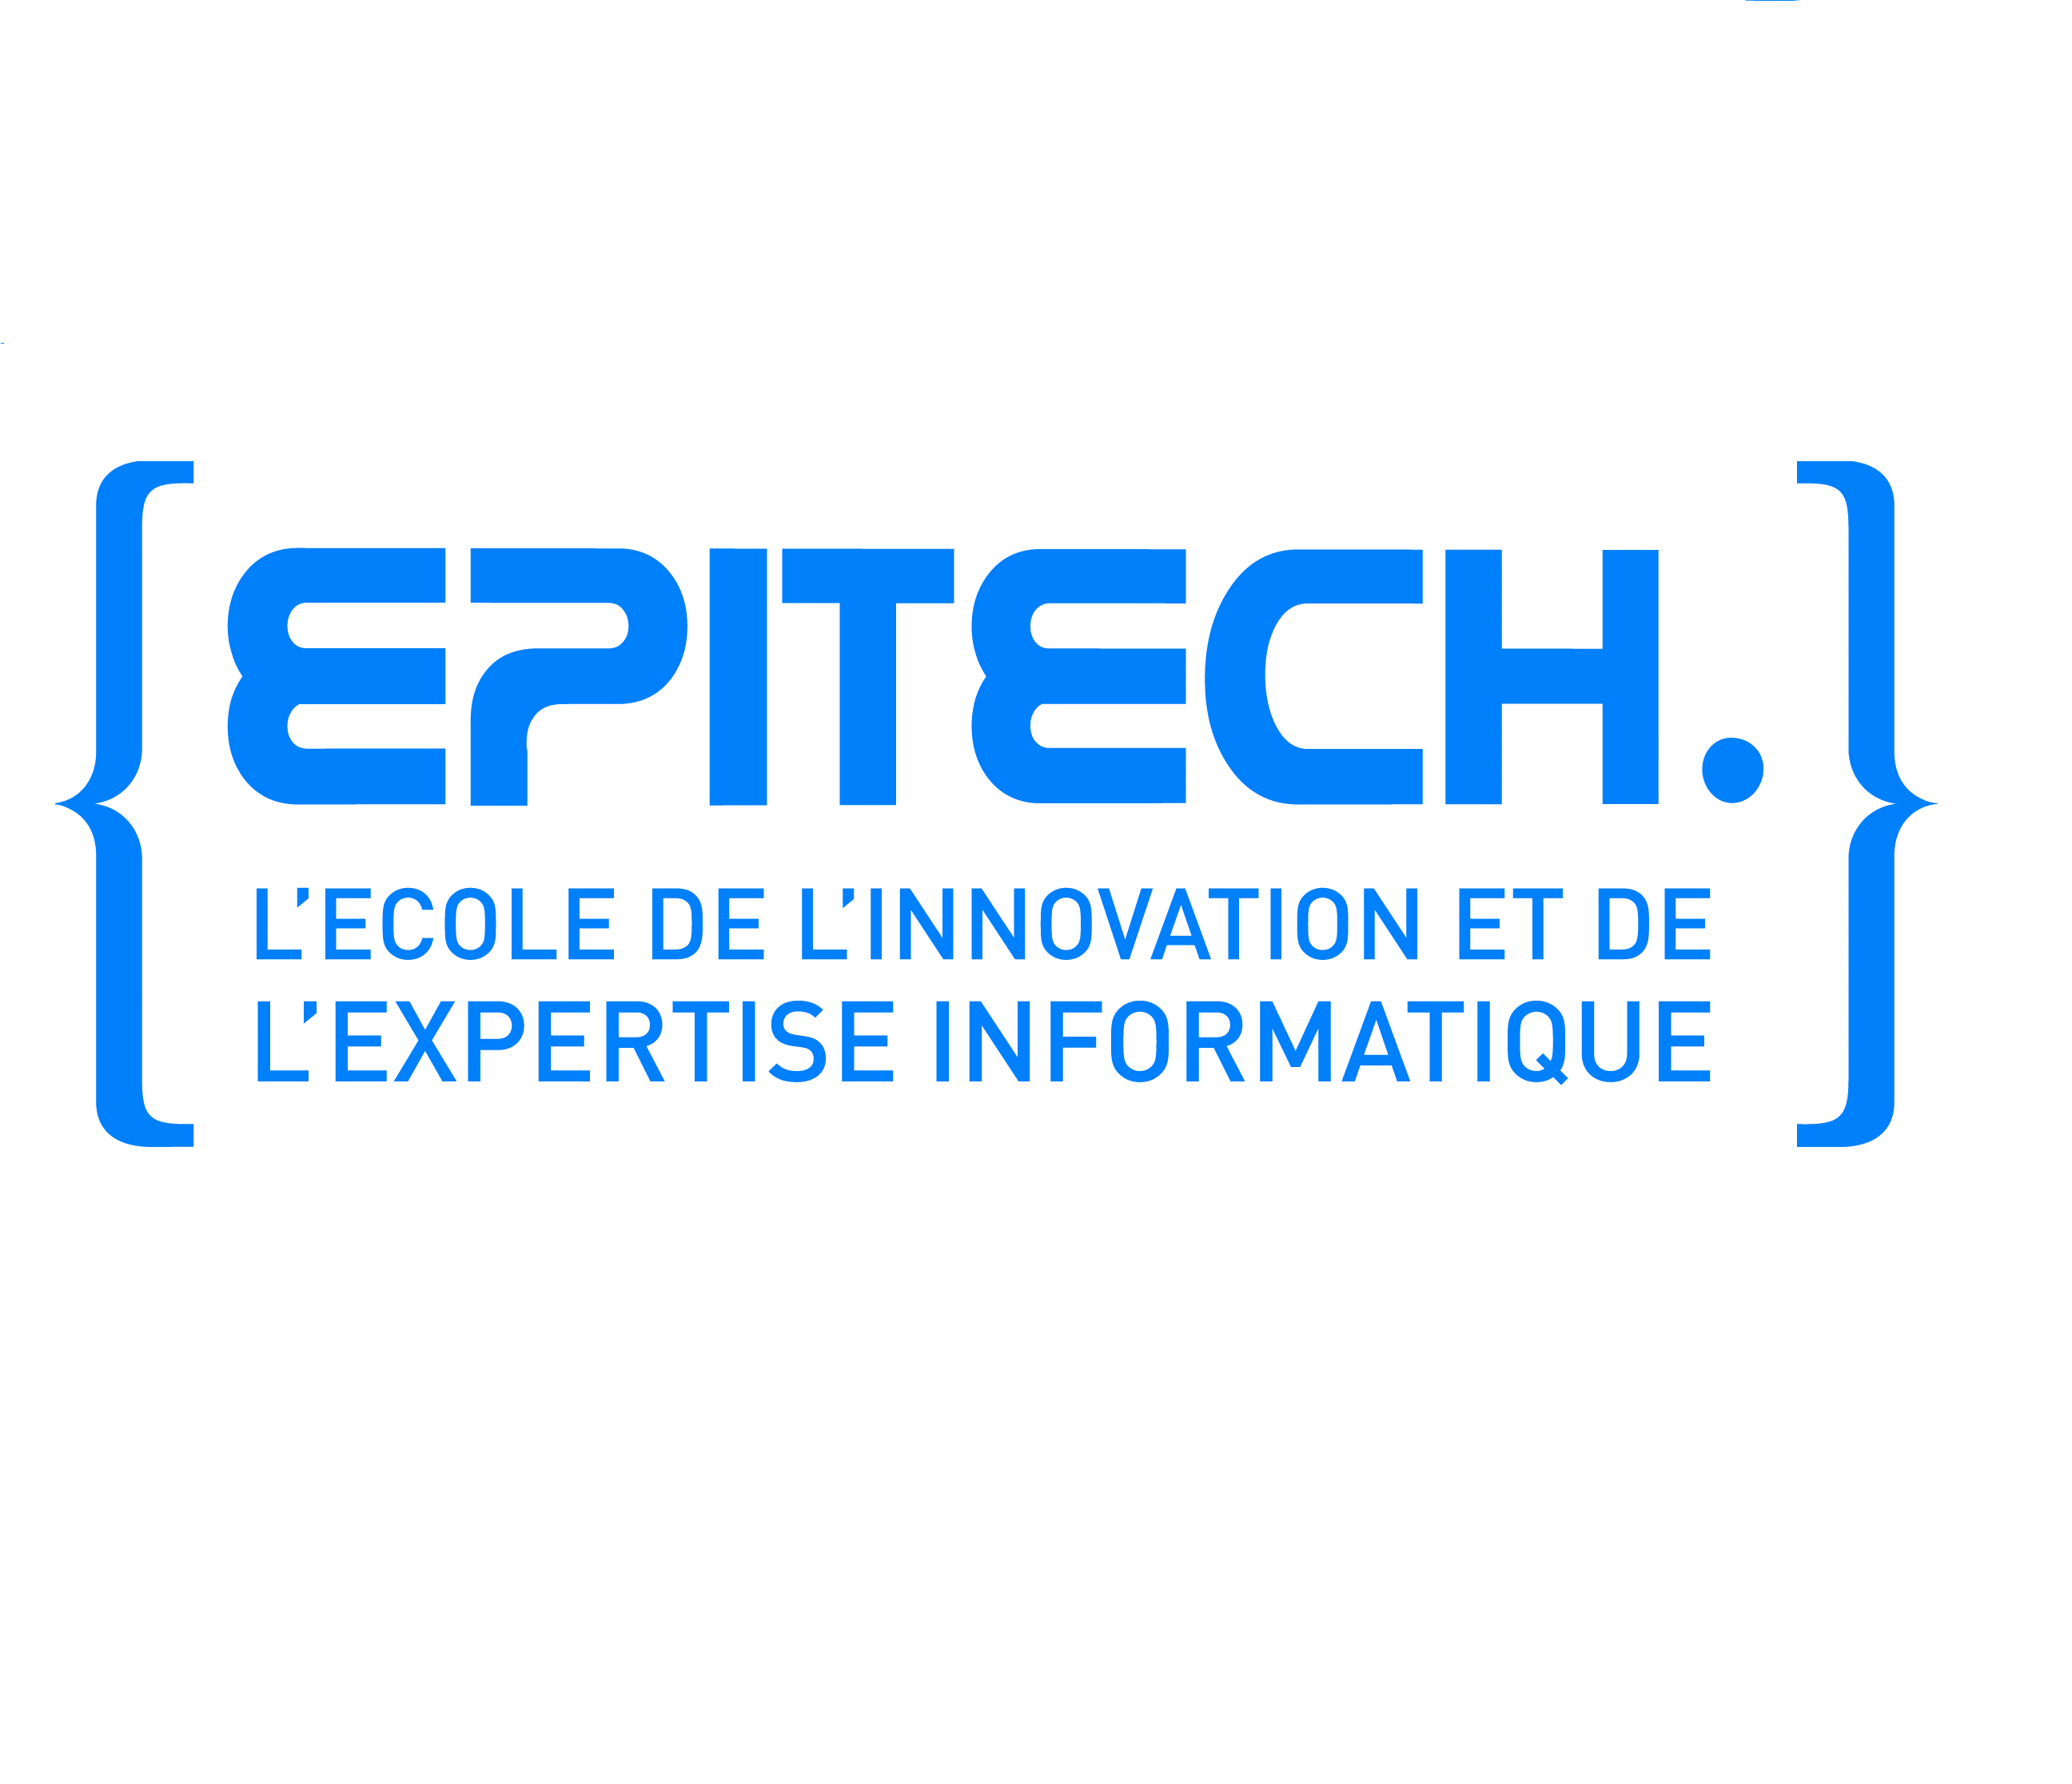 Ecole Informatique - Epitech